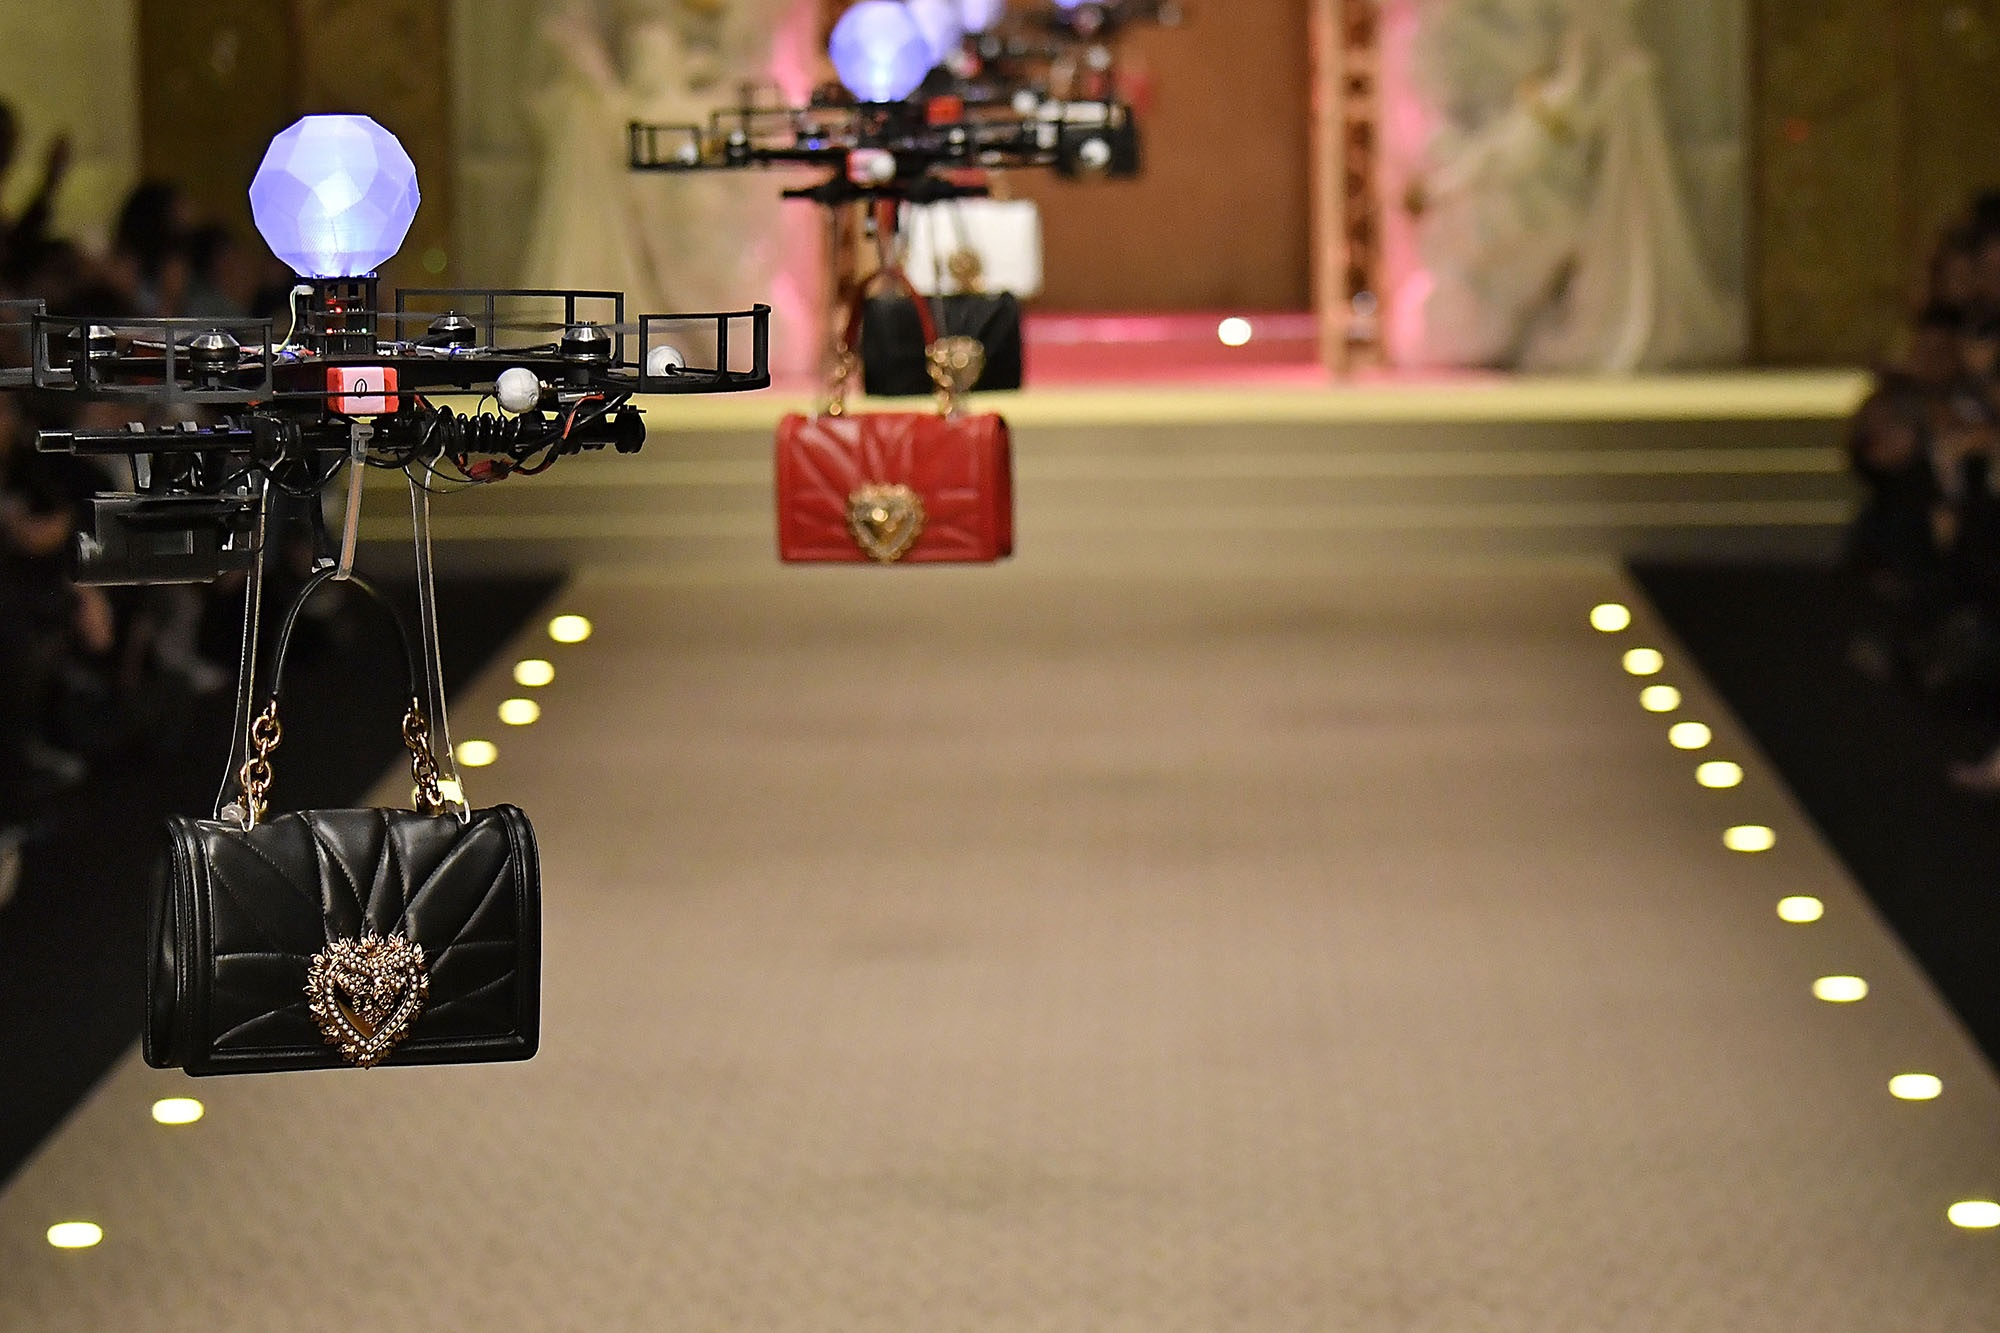 Drones Dolce and Gabbana